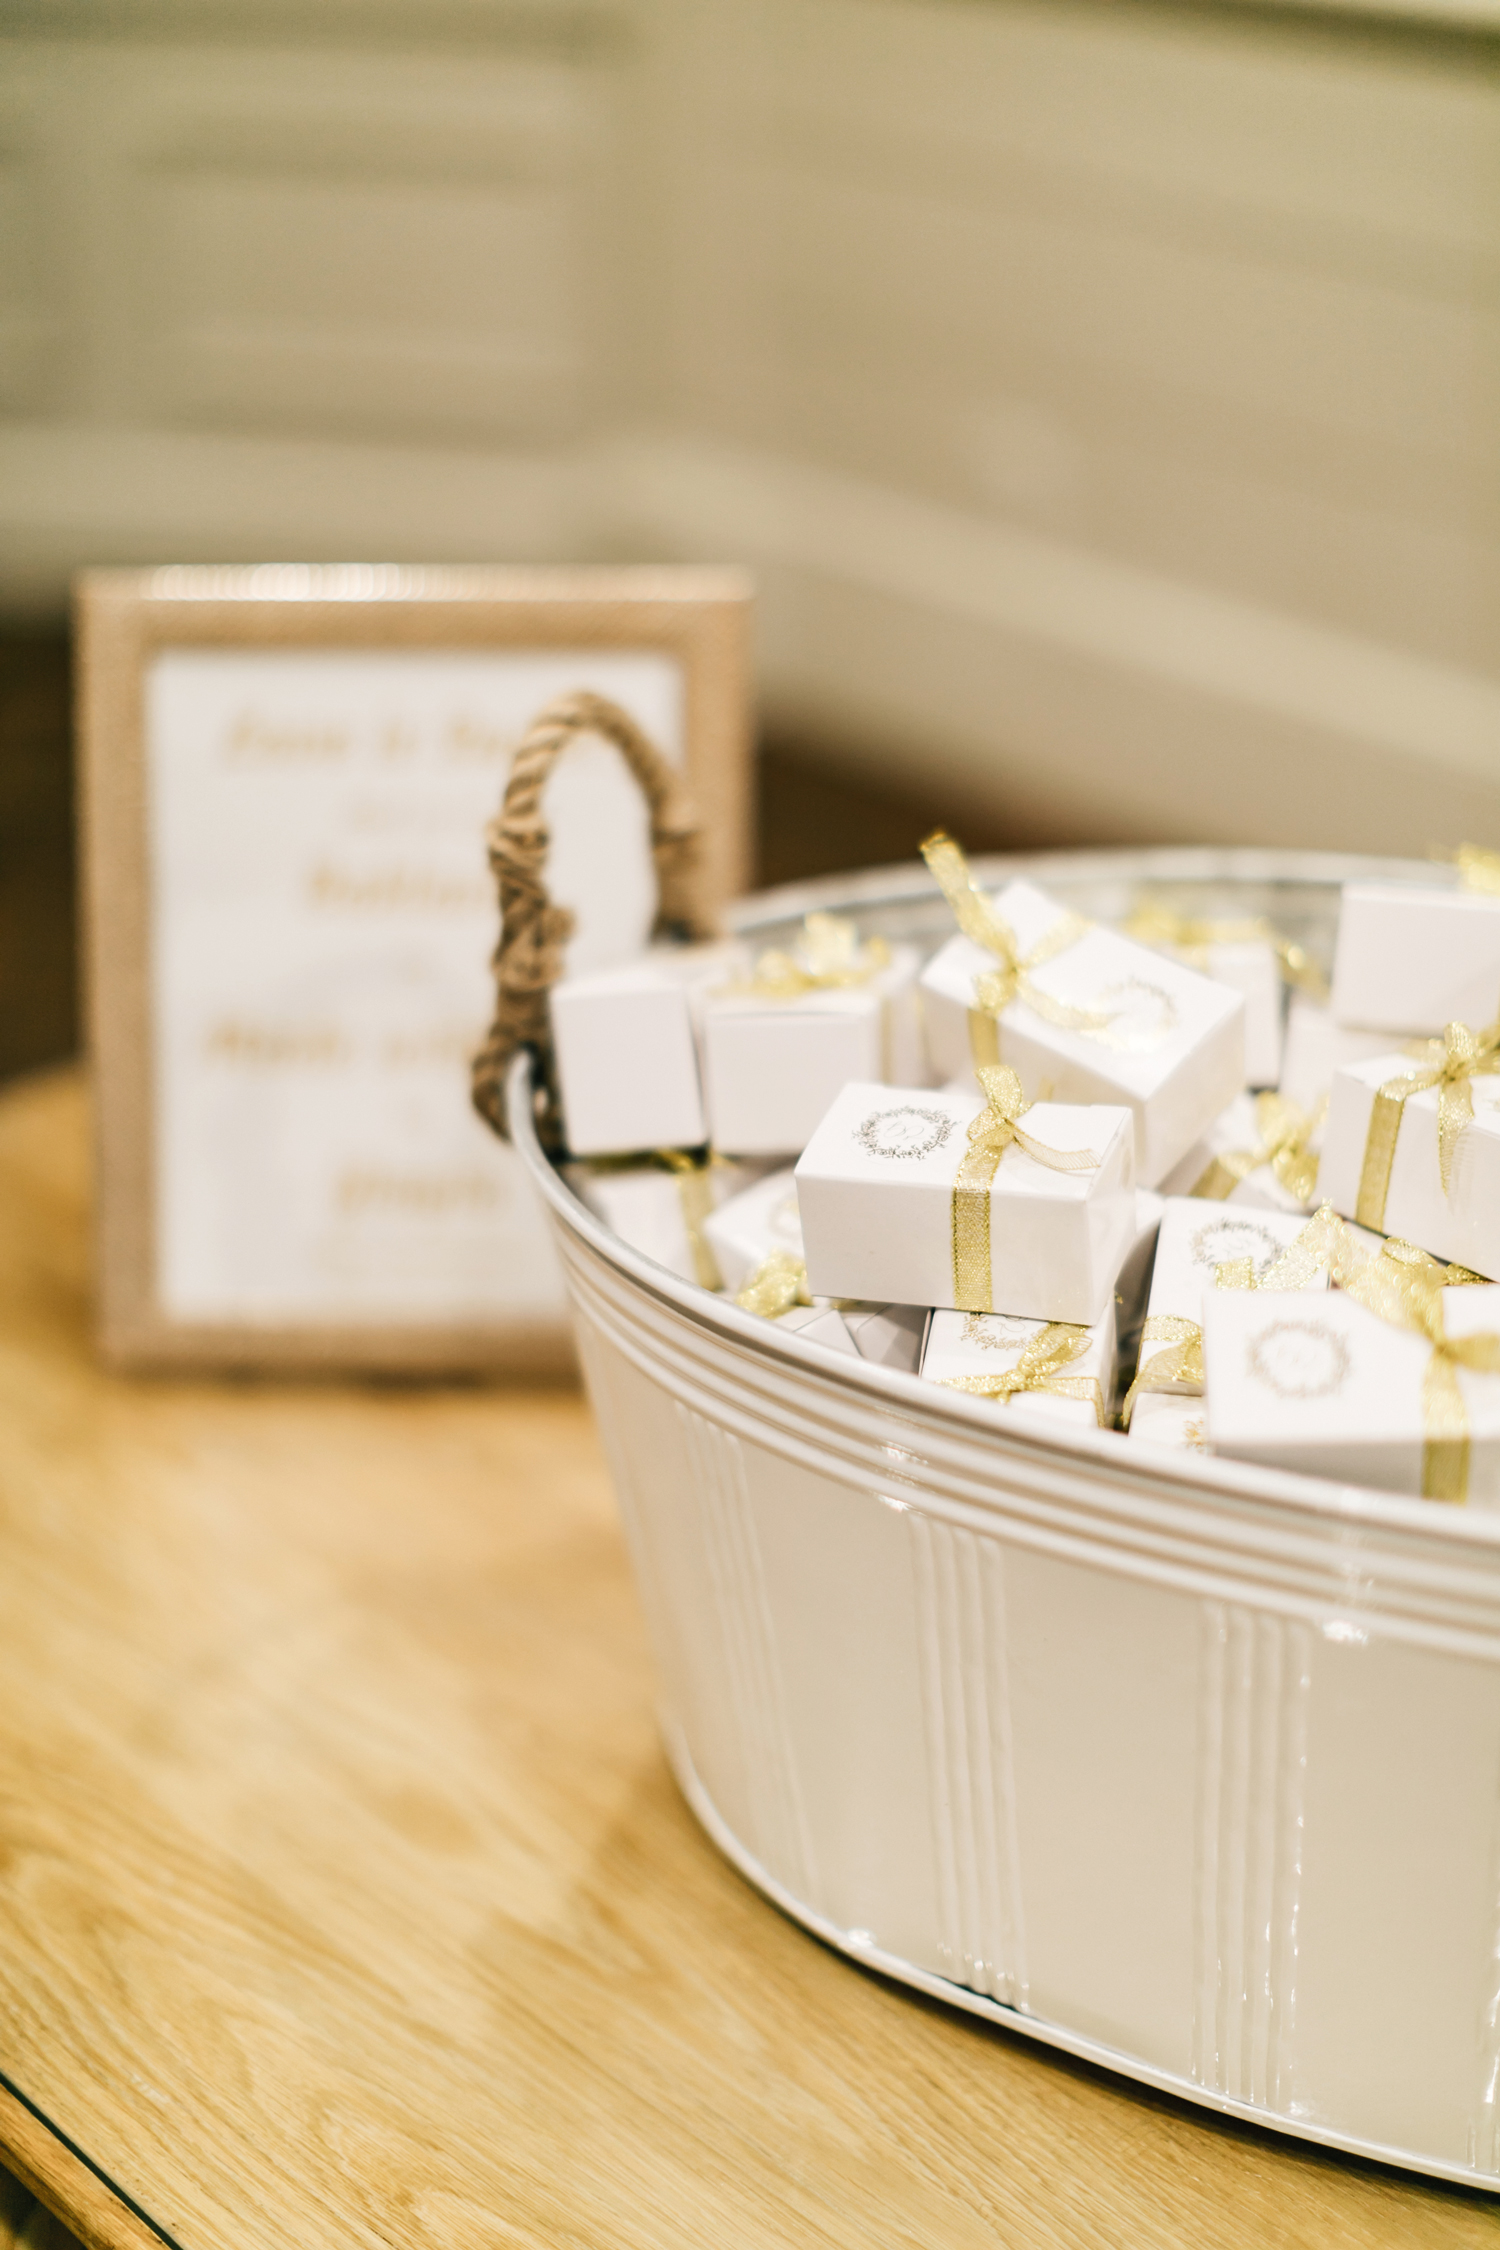 wedding favors boxed and tied with gold ribbon